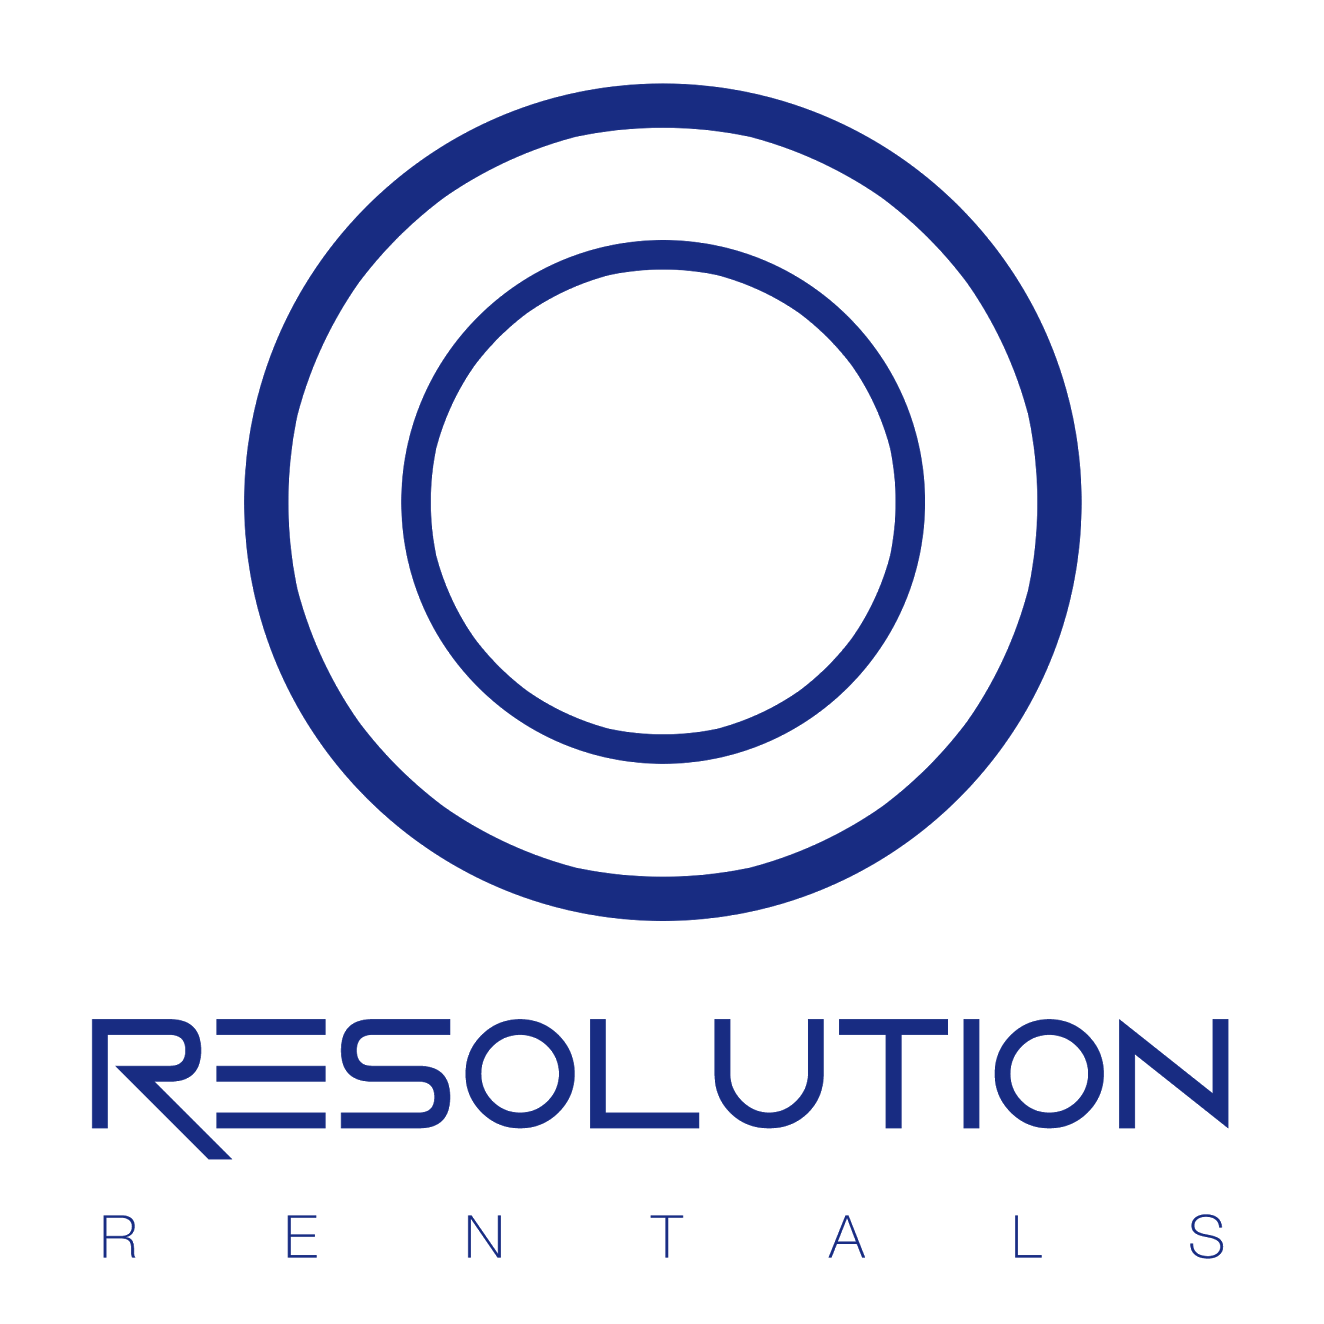 ResolutionRentals_SquareLogo.png